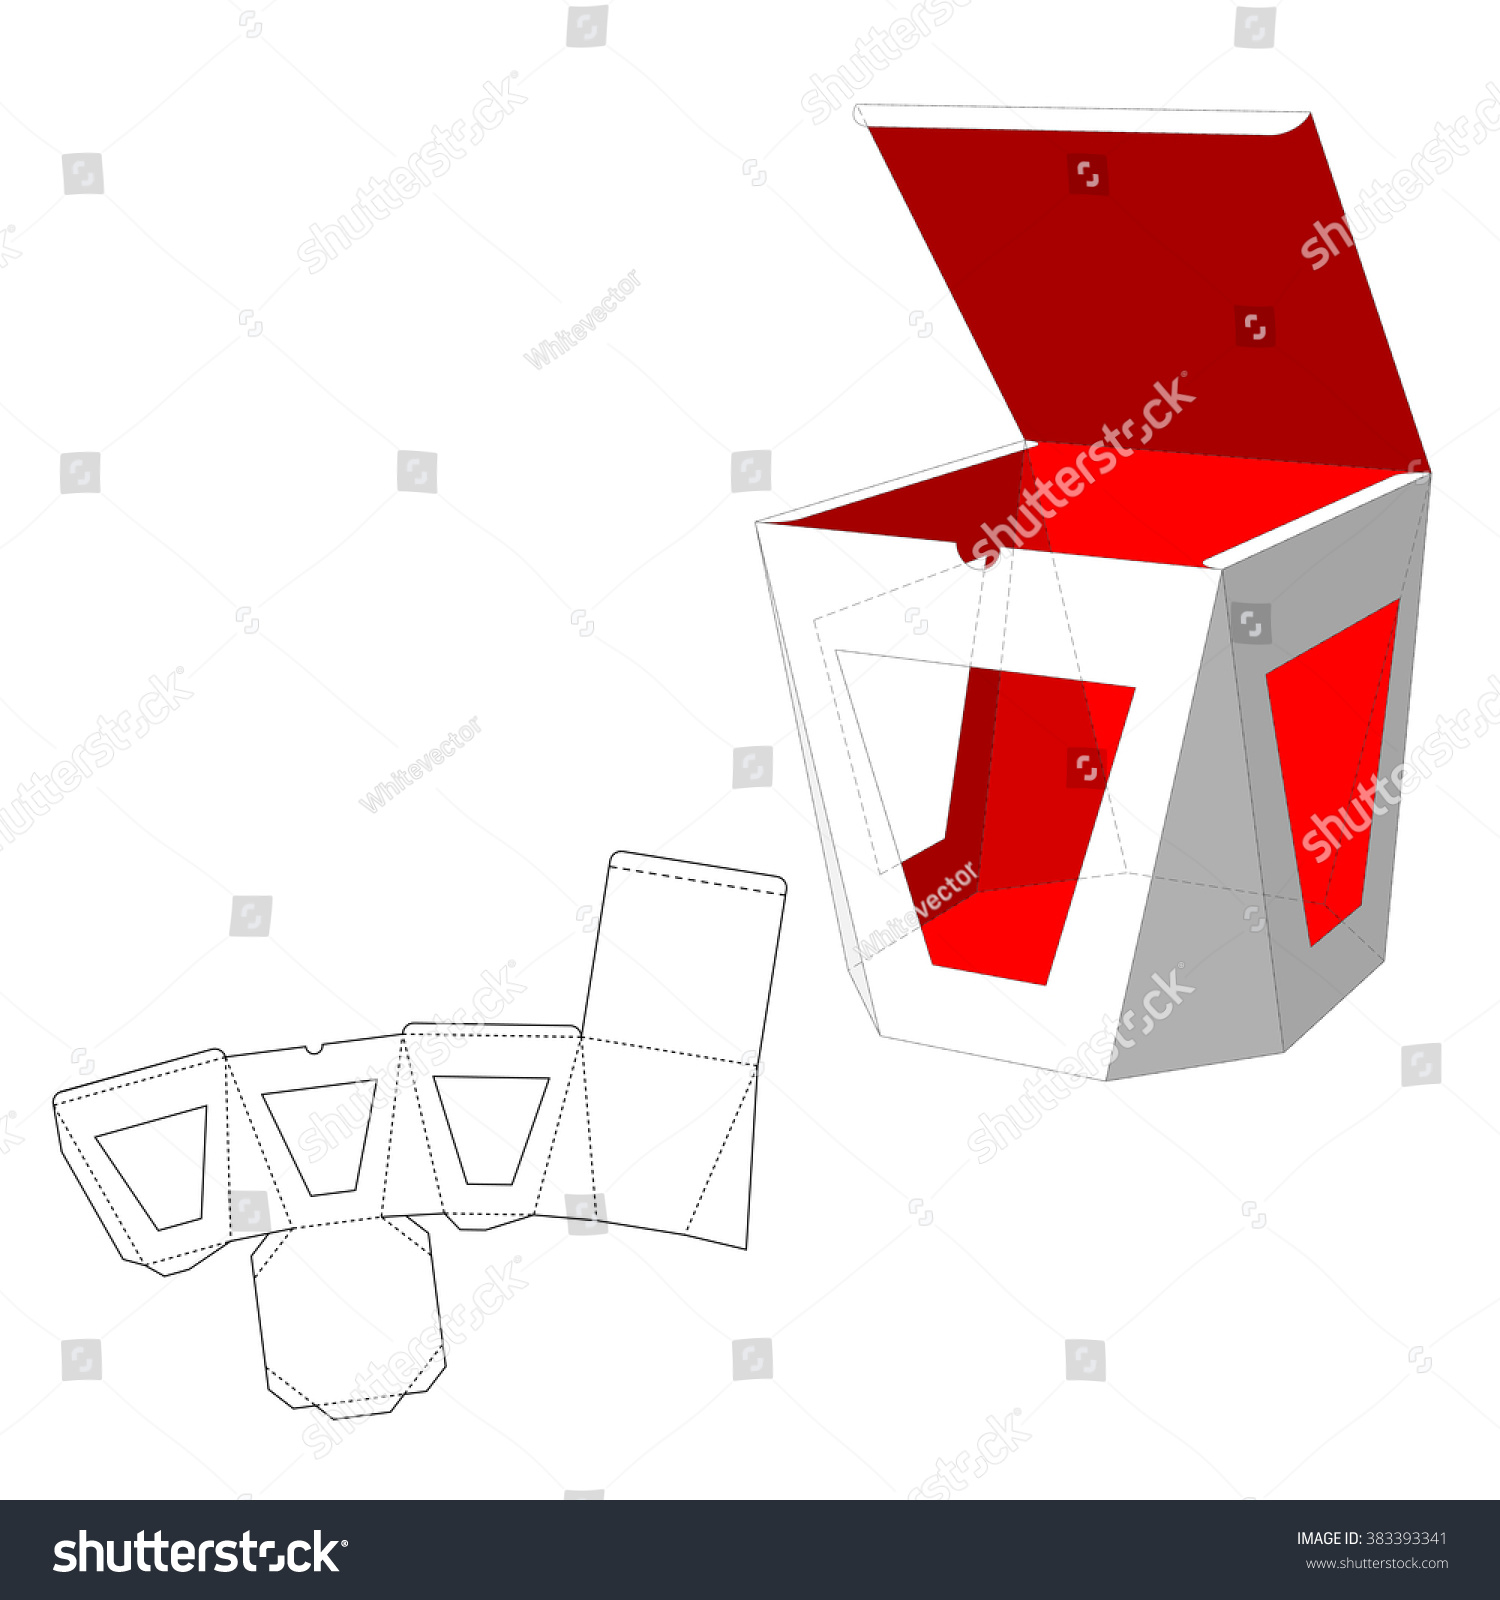 box windows die cut template packing stock vector  box windows die cut template packing box for food gift or other products